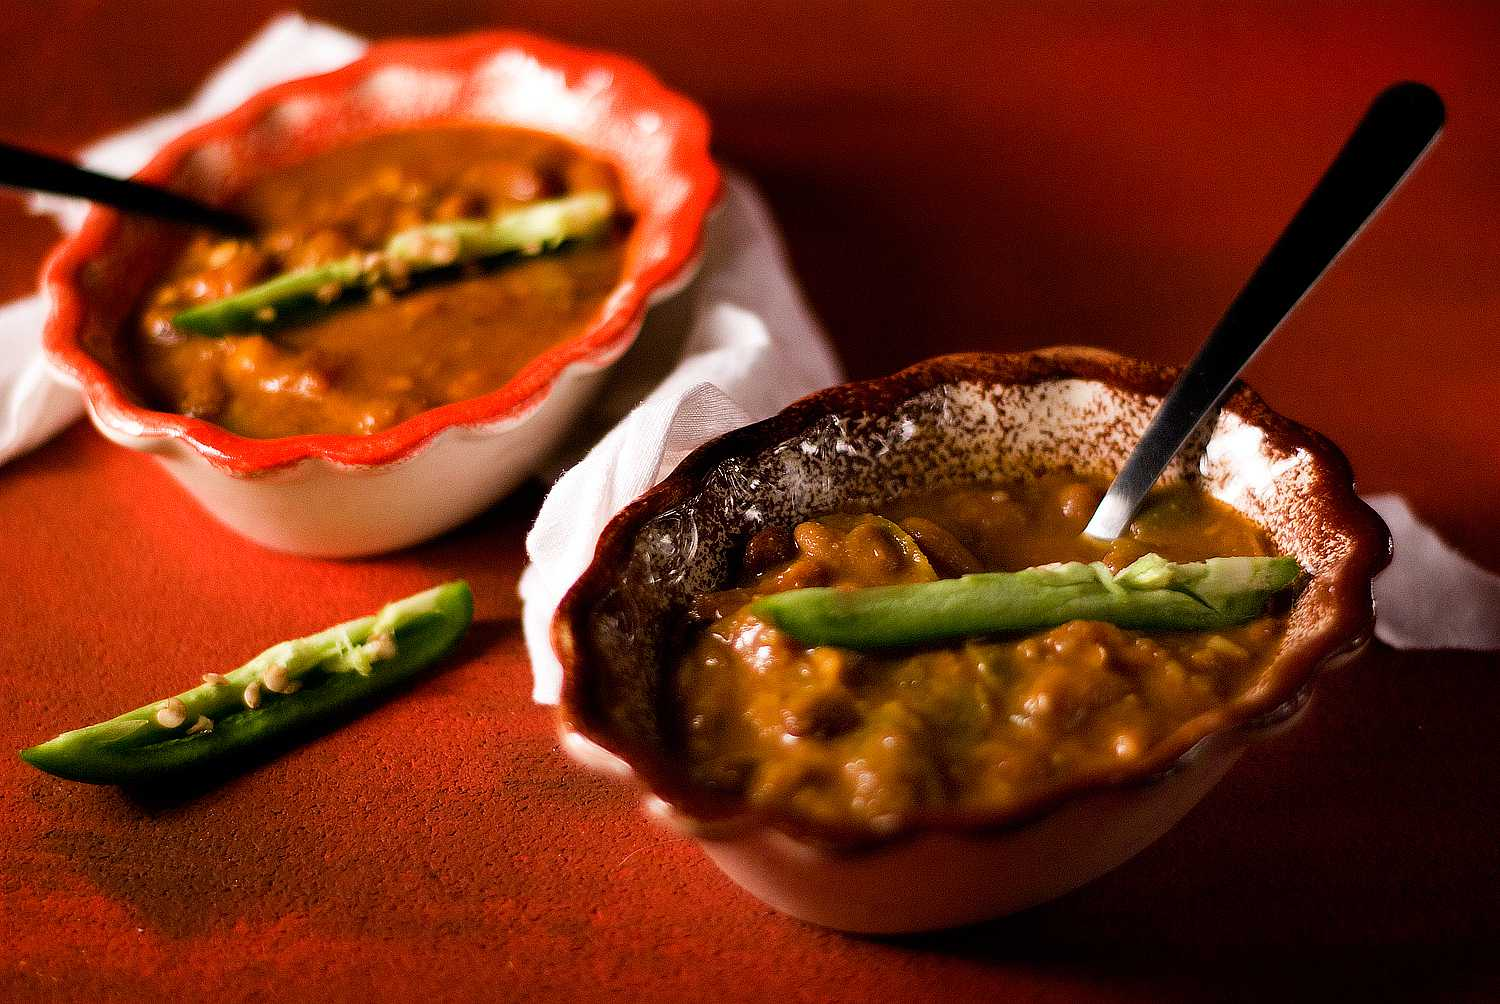 Vegan Chili with Spicy Green Peppers